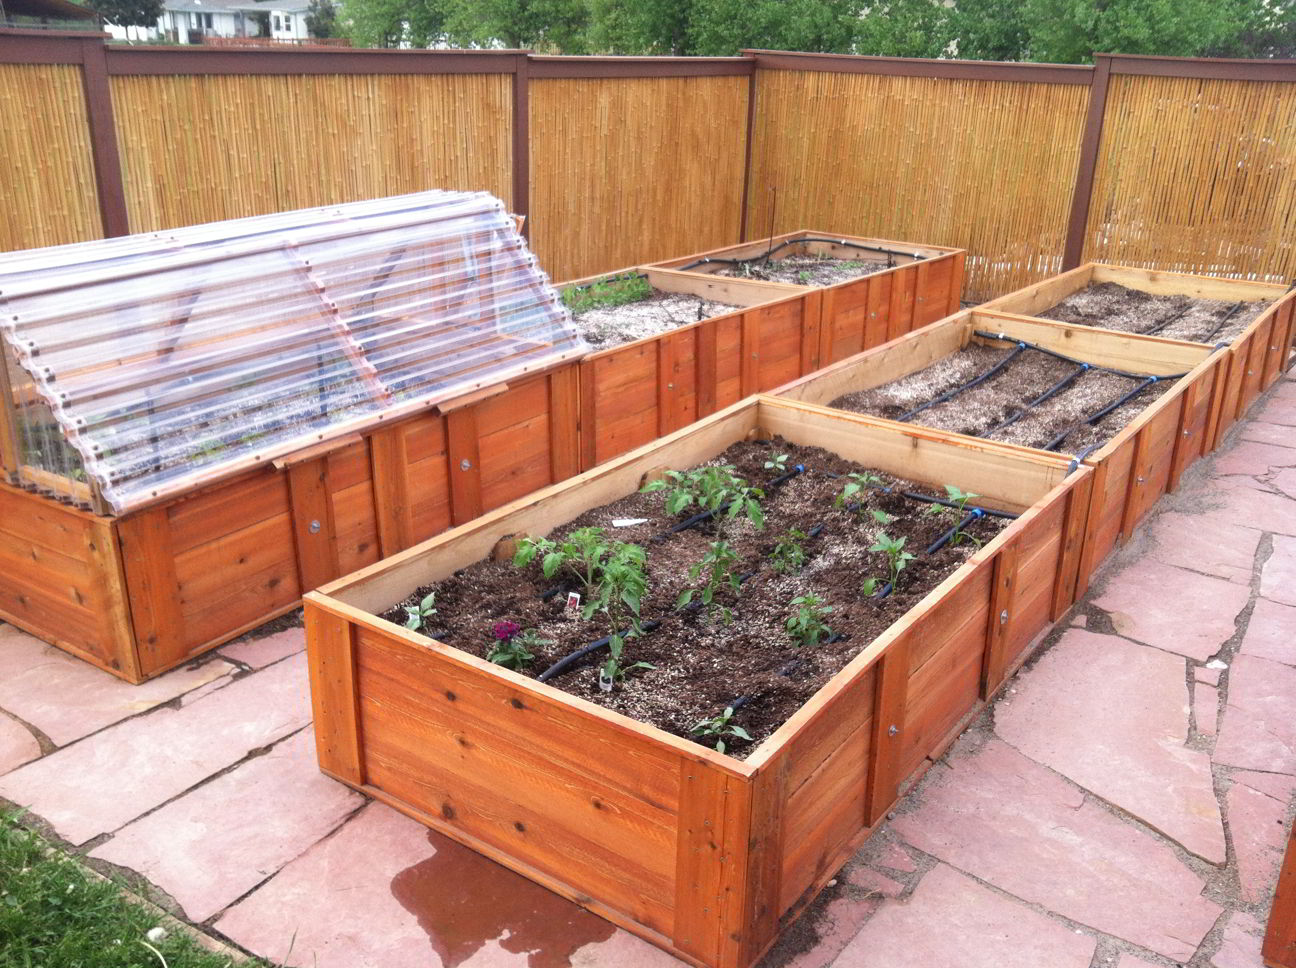 Raised Bed Garden And Attached Cold Frame With Drip Irrigation And Flagstone Pathways